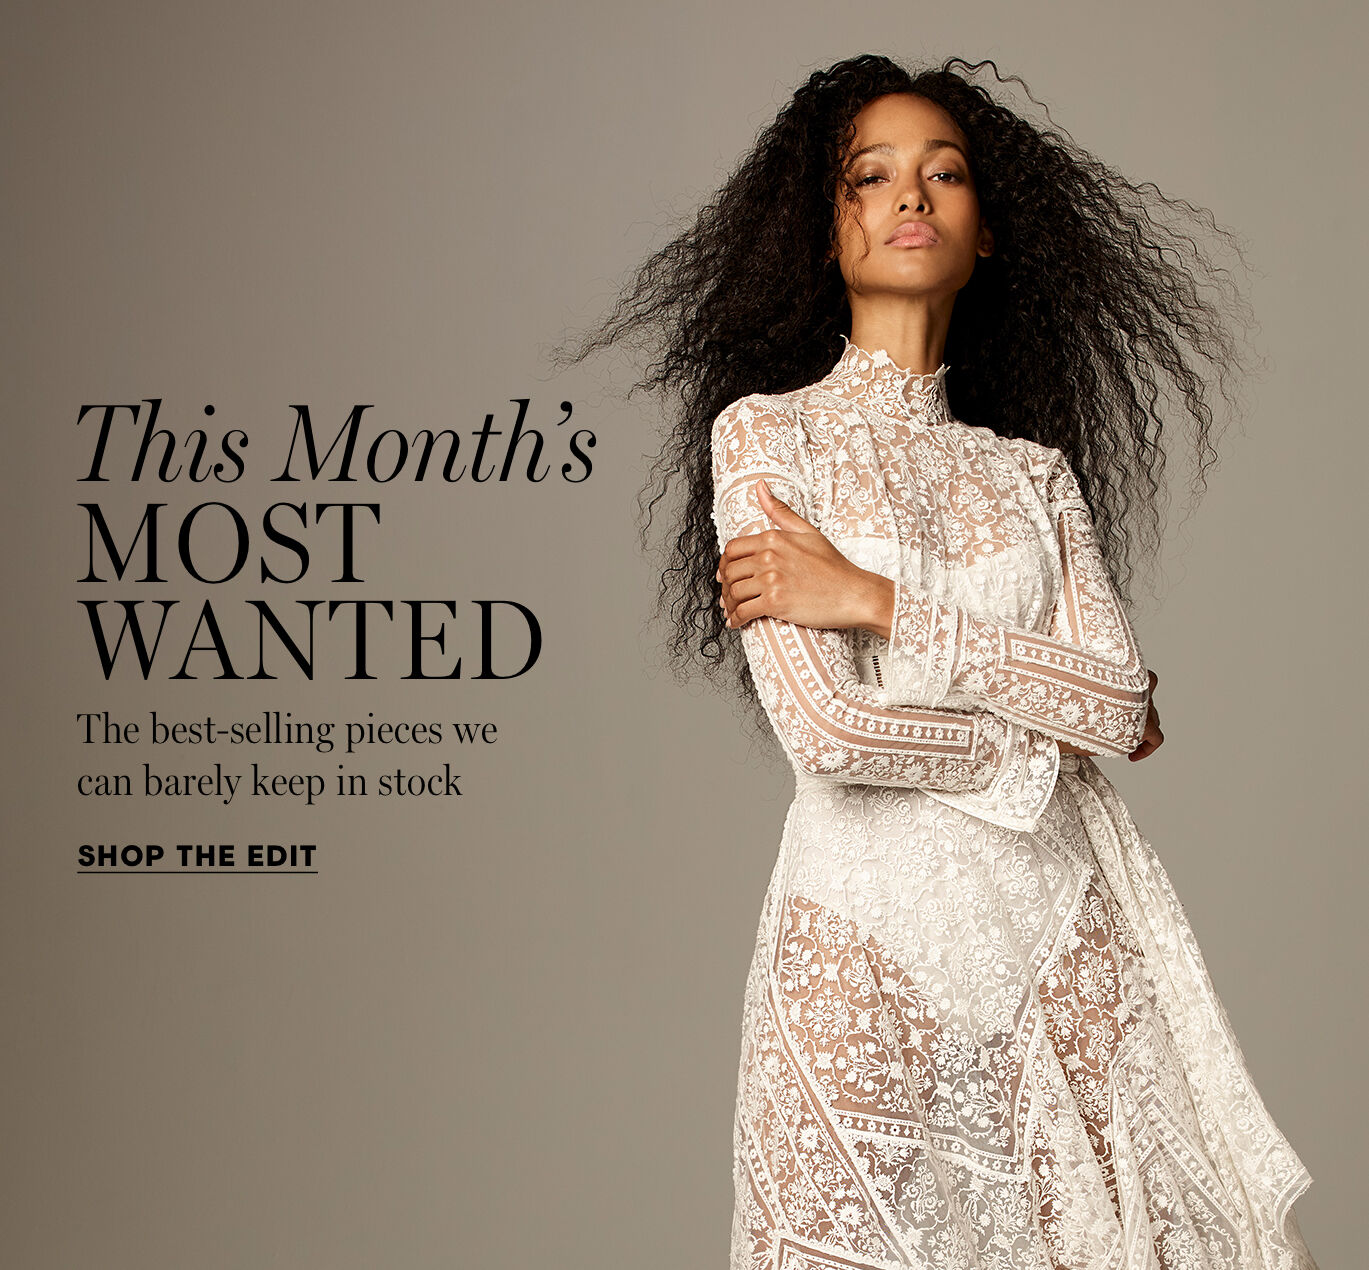 This Month's Most Wanted